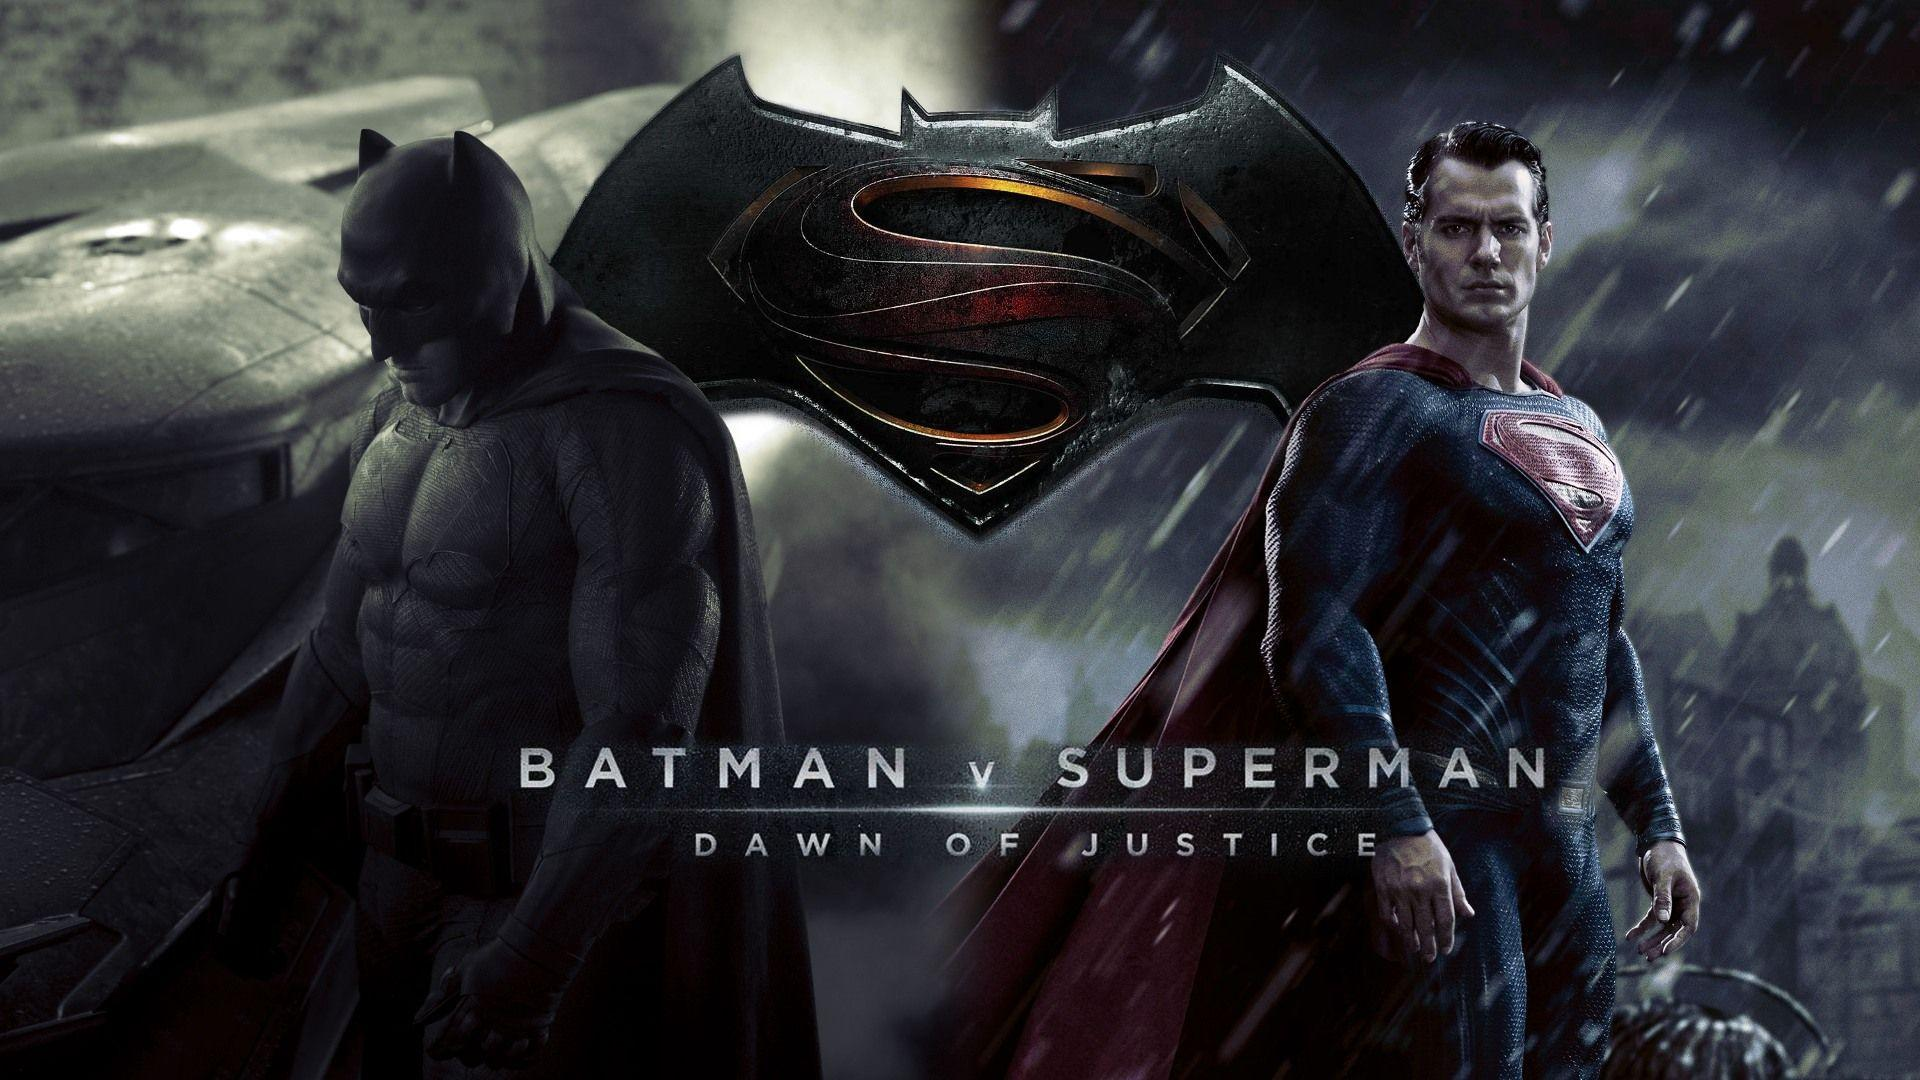 Download Wallpapers 1920x1080 Batman v superman dawn of justice